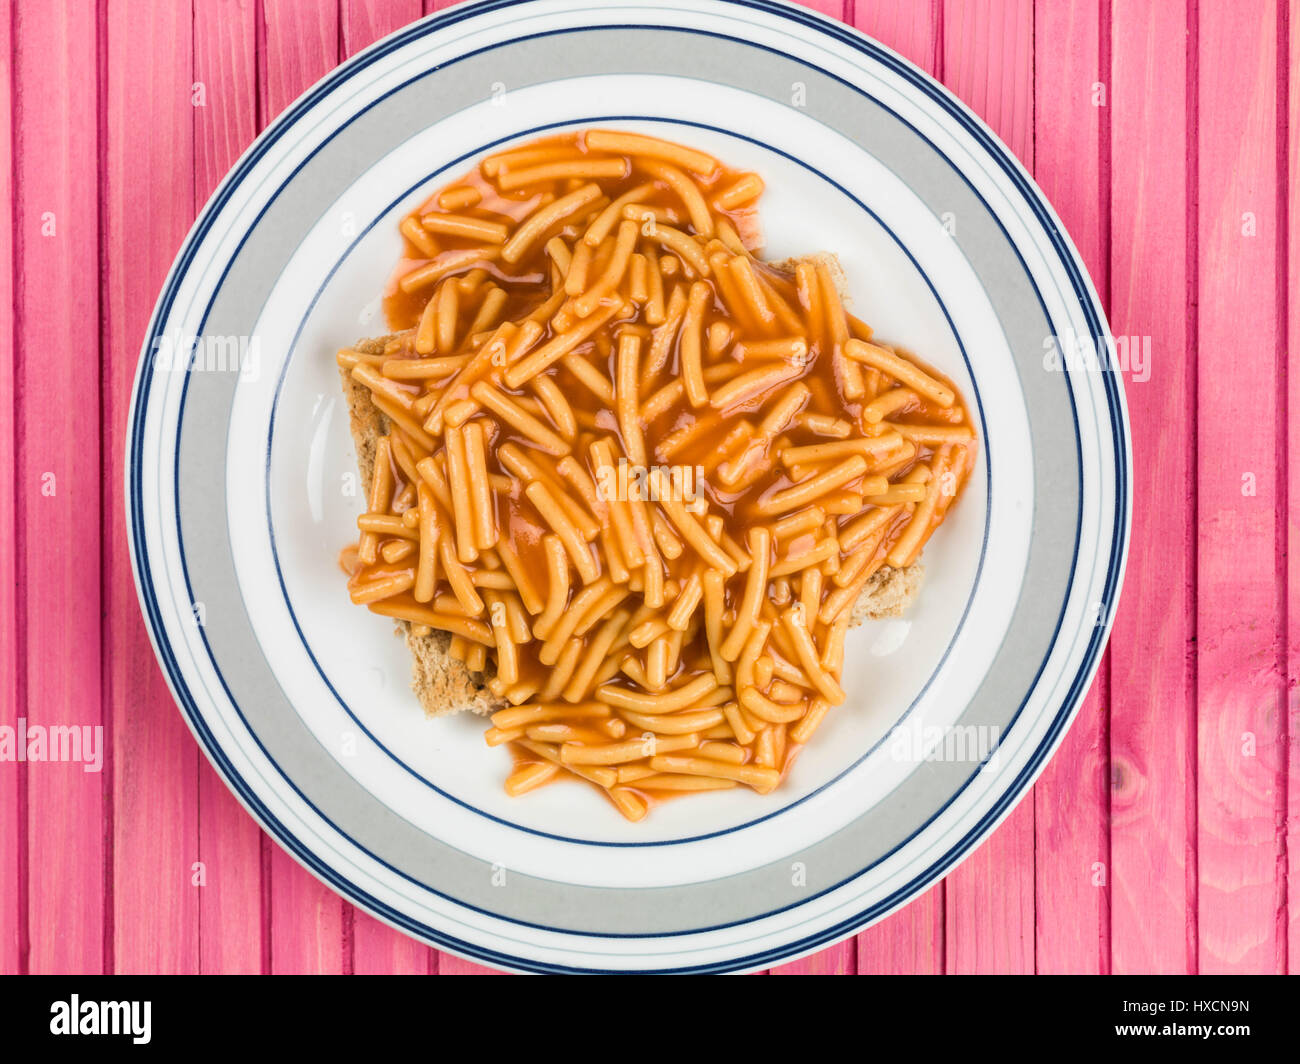 Spaghetti on Toasted Bread Served on a Plate Against a Pink Background - Stock Image